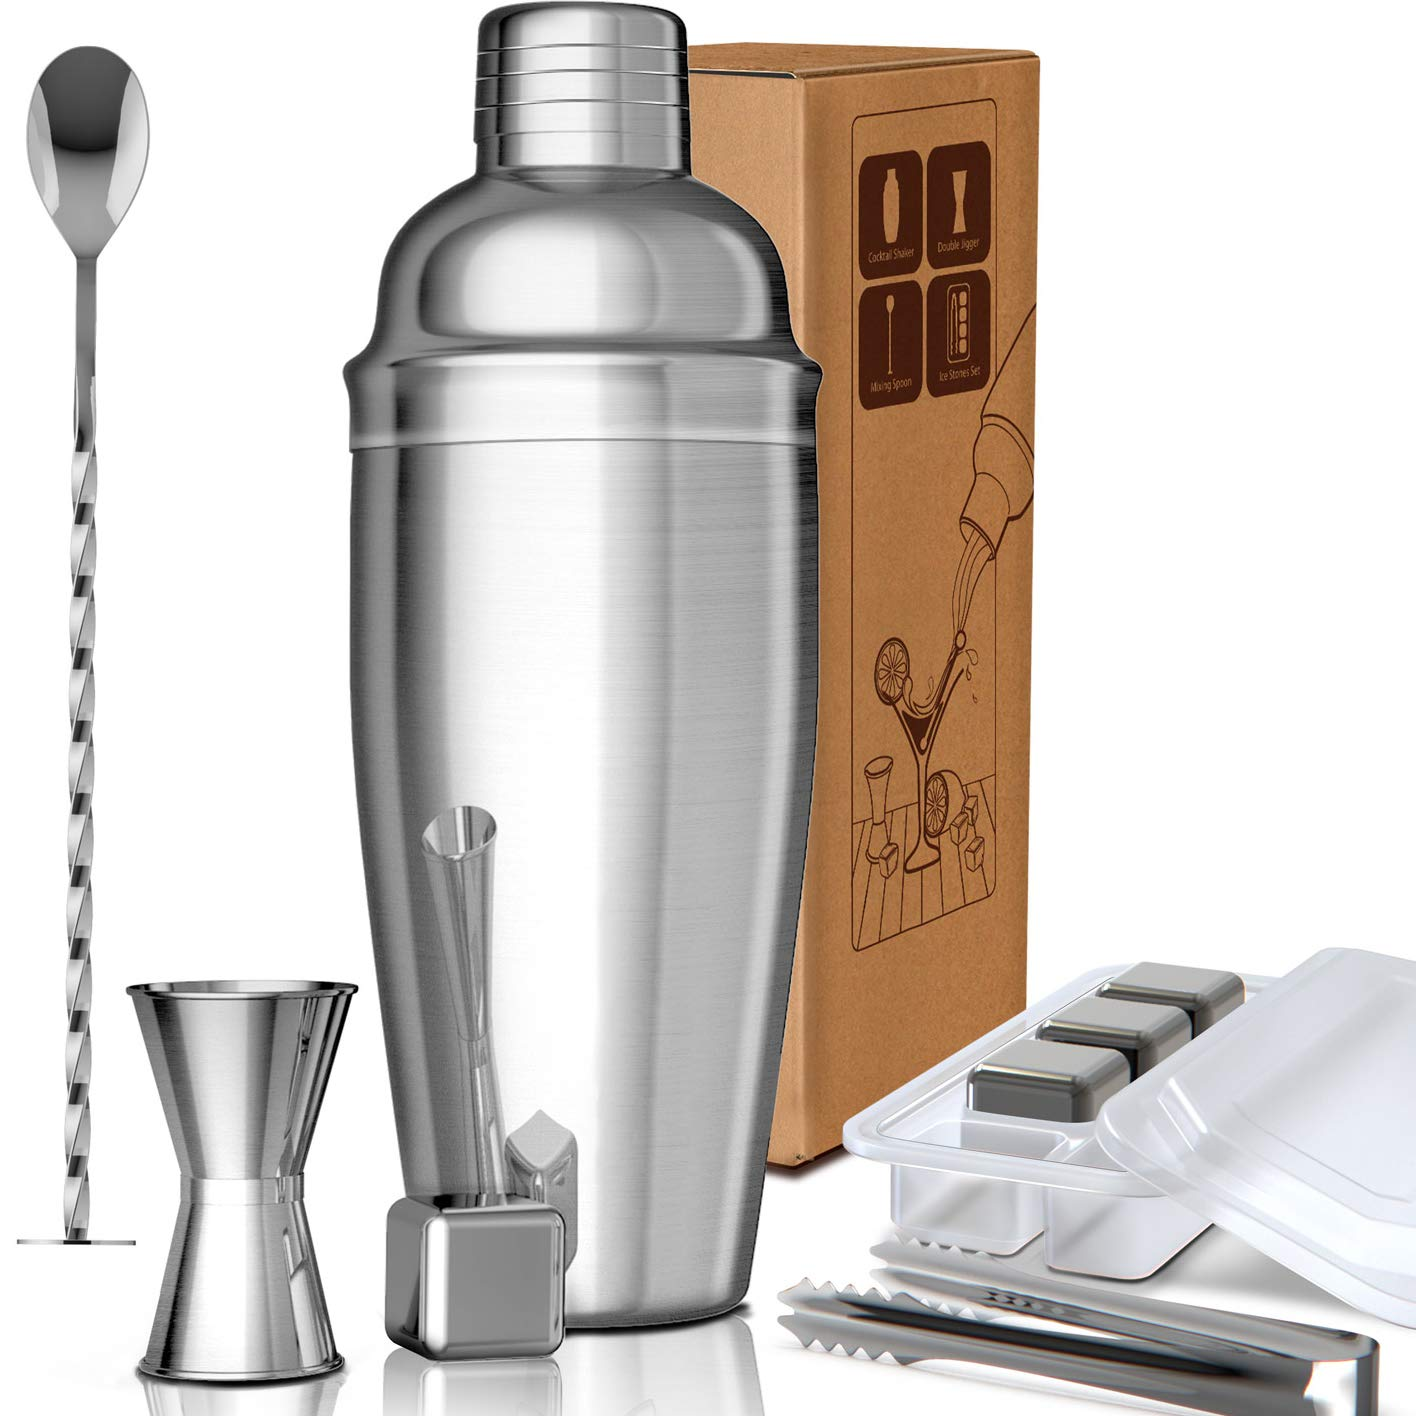 COXIBAR 9 Pcs Cocktail Shaker Bar Set Stainless Steel Bar Tools With Whiskey Ice Stone Double Jigger Mixing Spoon Ice Tongs Professional Bartender Kit for Martini